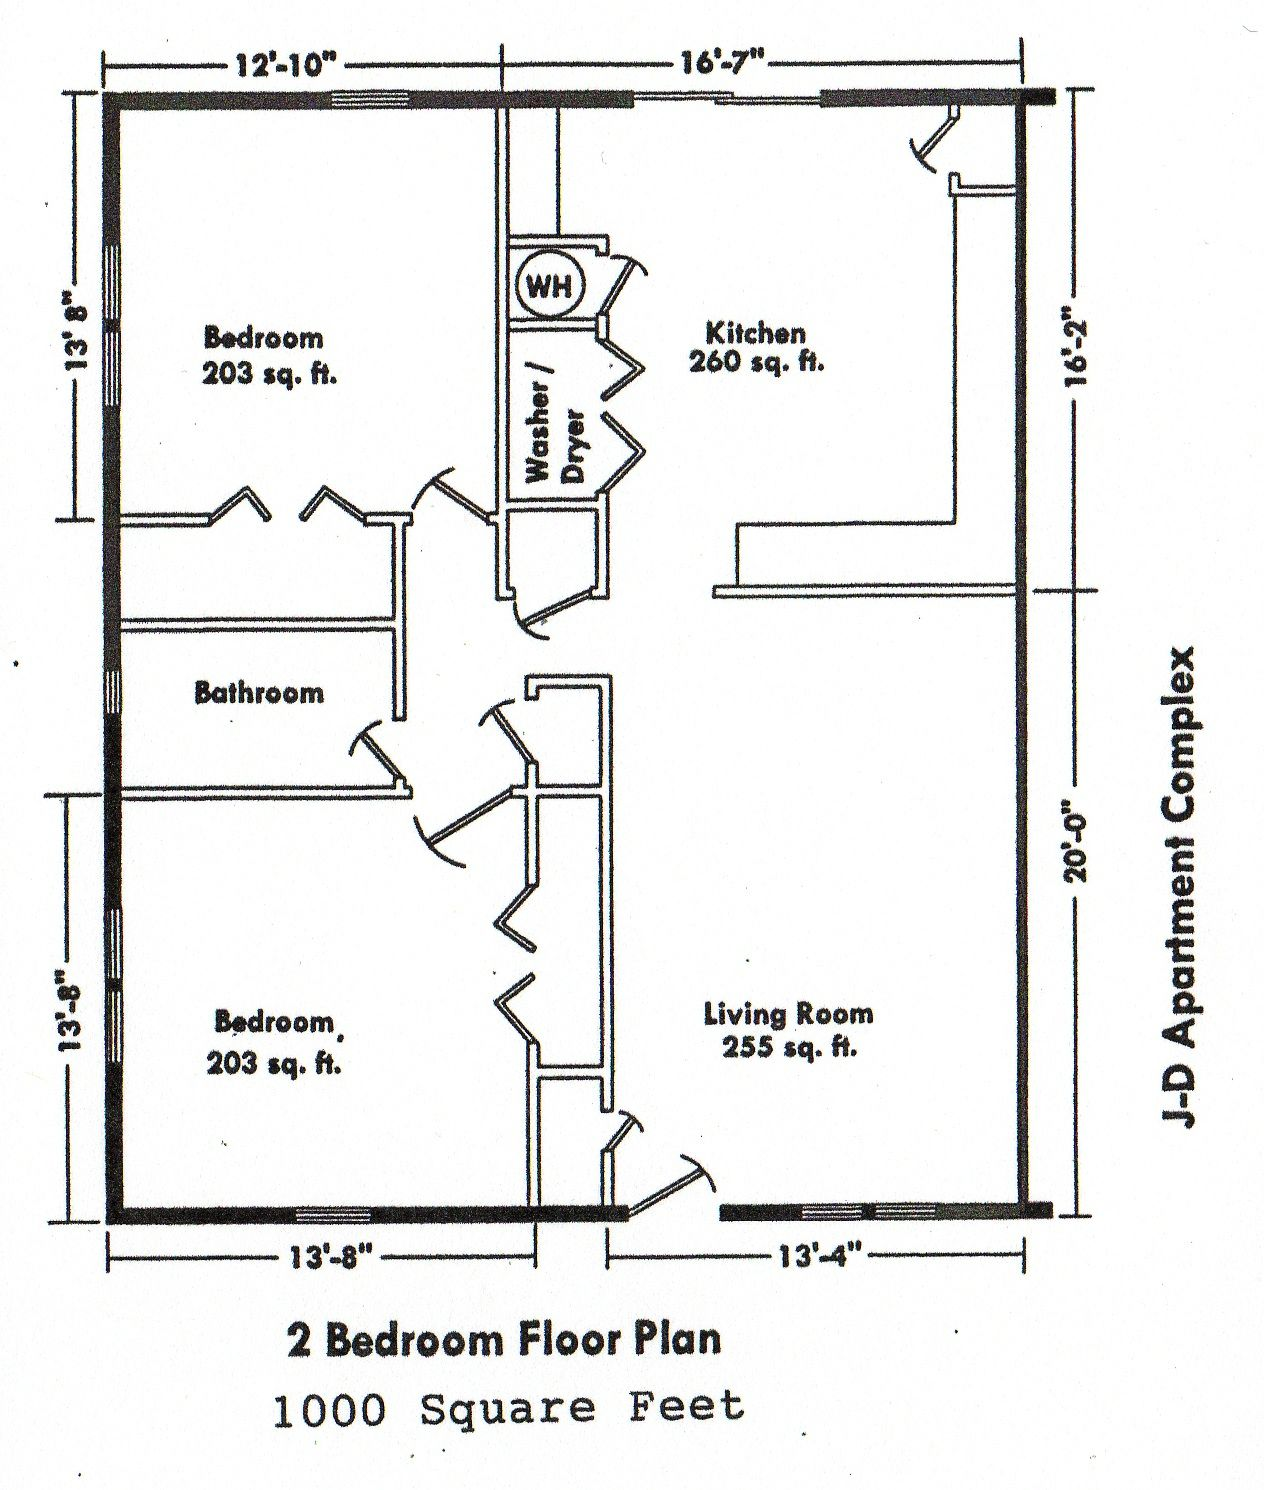 Small house floor plans 2 bedrooms master bedroom suite home addition plans house plans Bungalow master bedroom addition